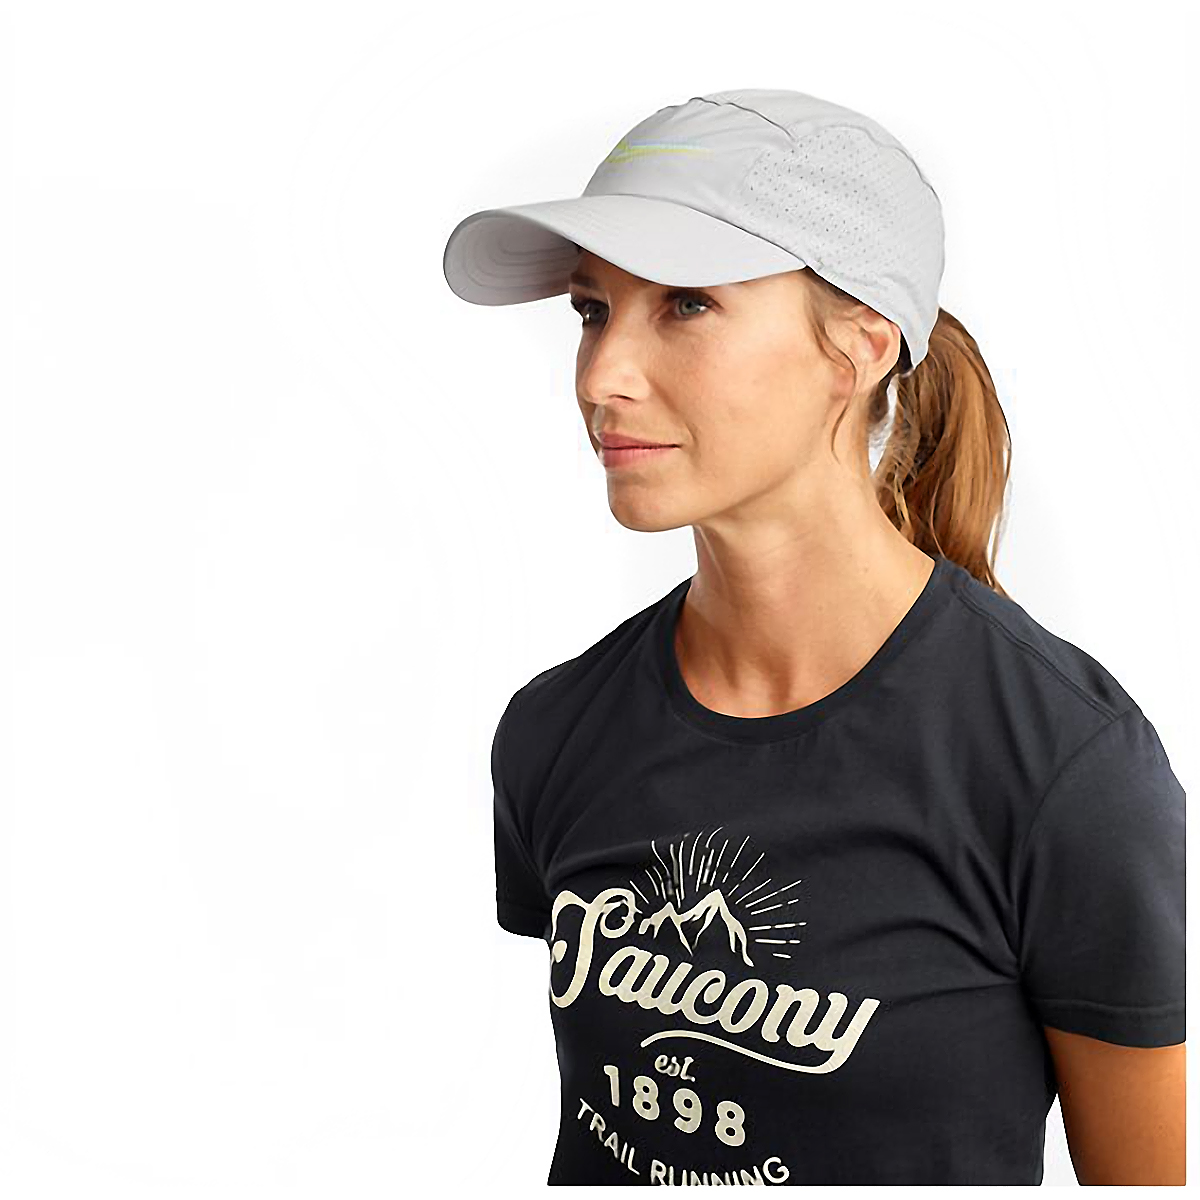 Saucony Outpace Hat - Color: Alloy, Alloy, large, image 1